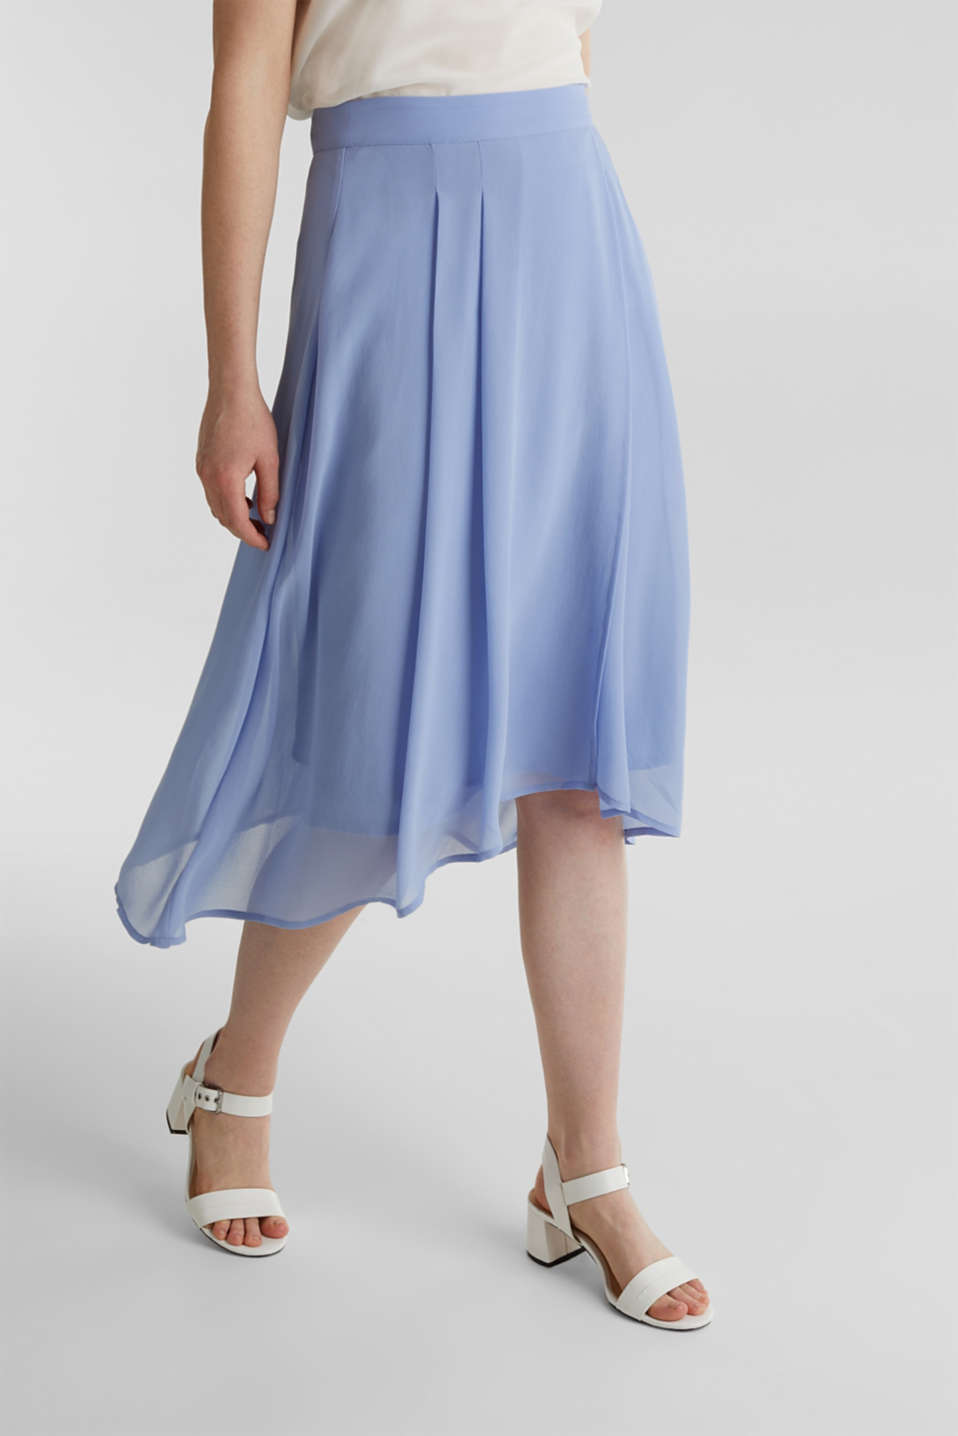 Chiffon skirt with a high-low hem, BLUE LAVENDER, detail image number 6